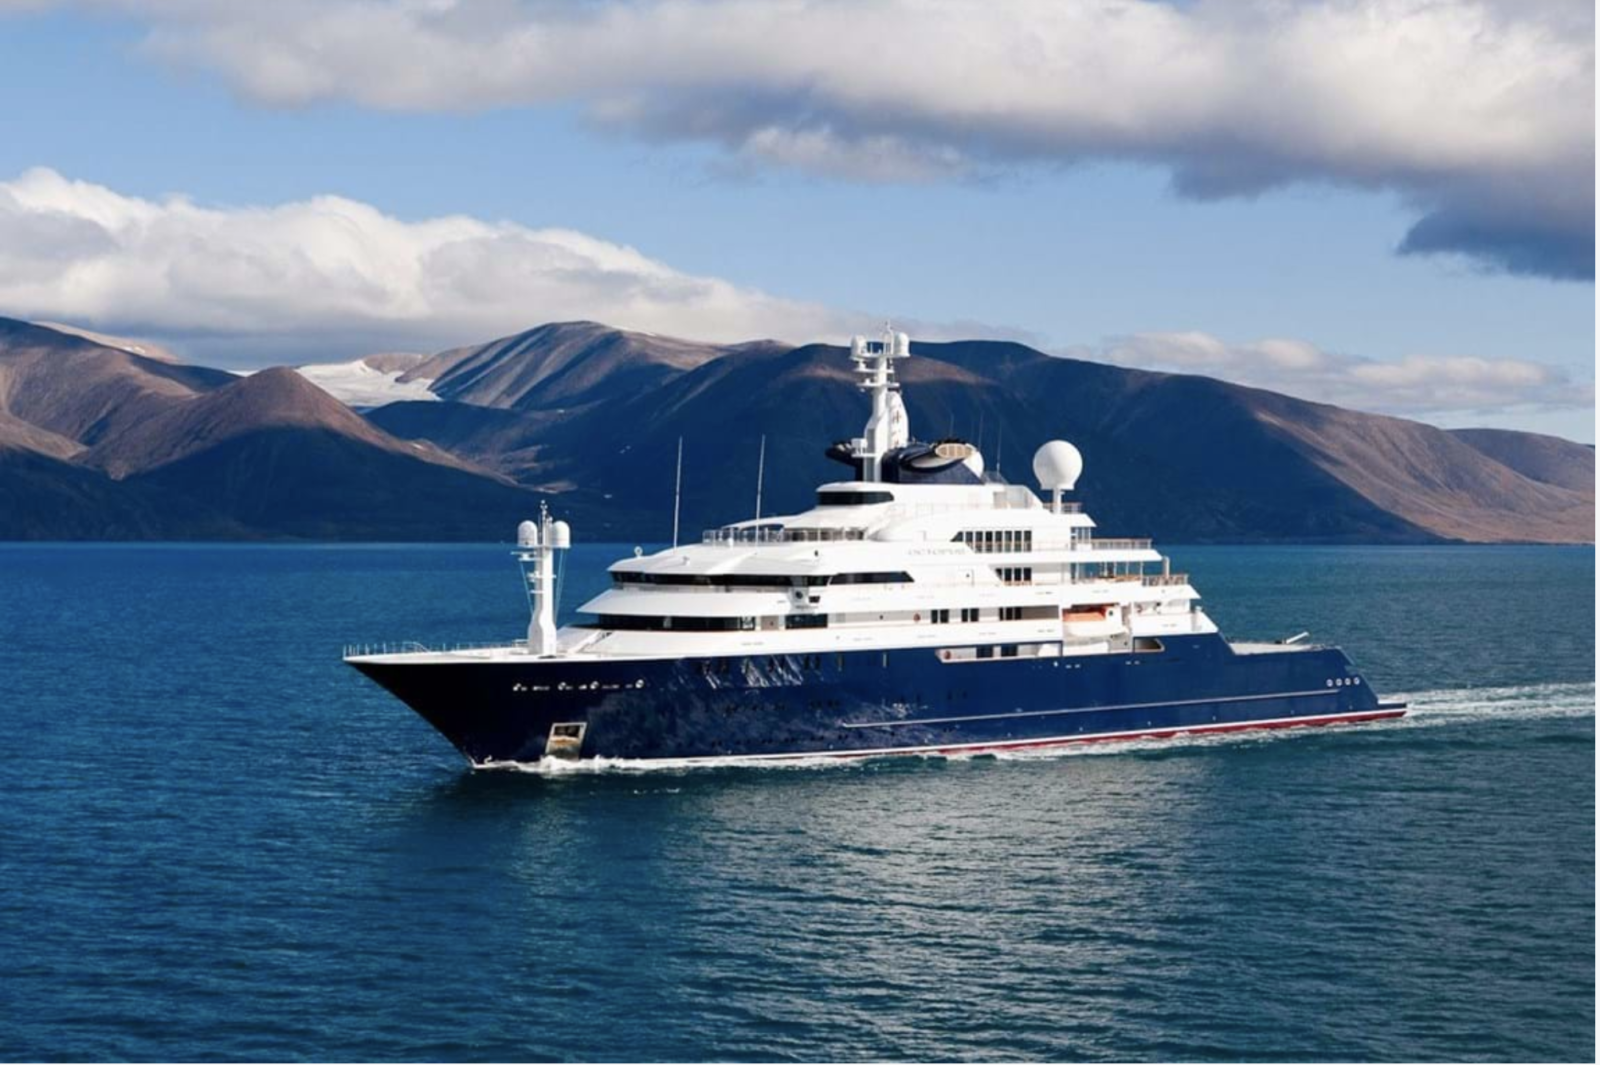 Late Microsoft co-founder Paul Allen's mega-yacht is for sale. Here's how much it costs 2